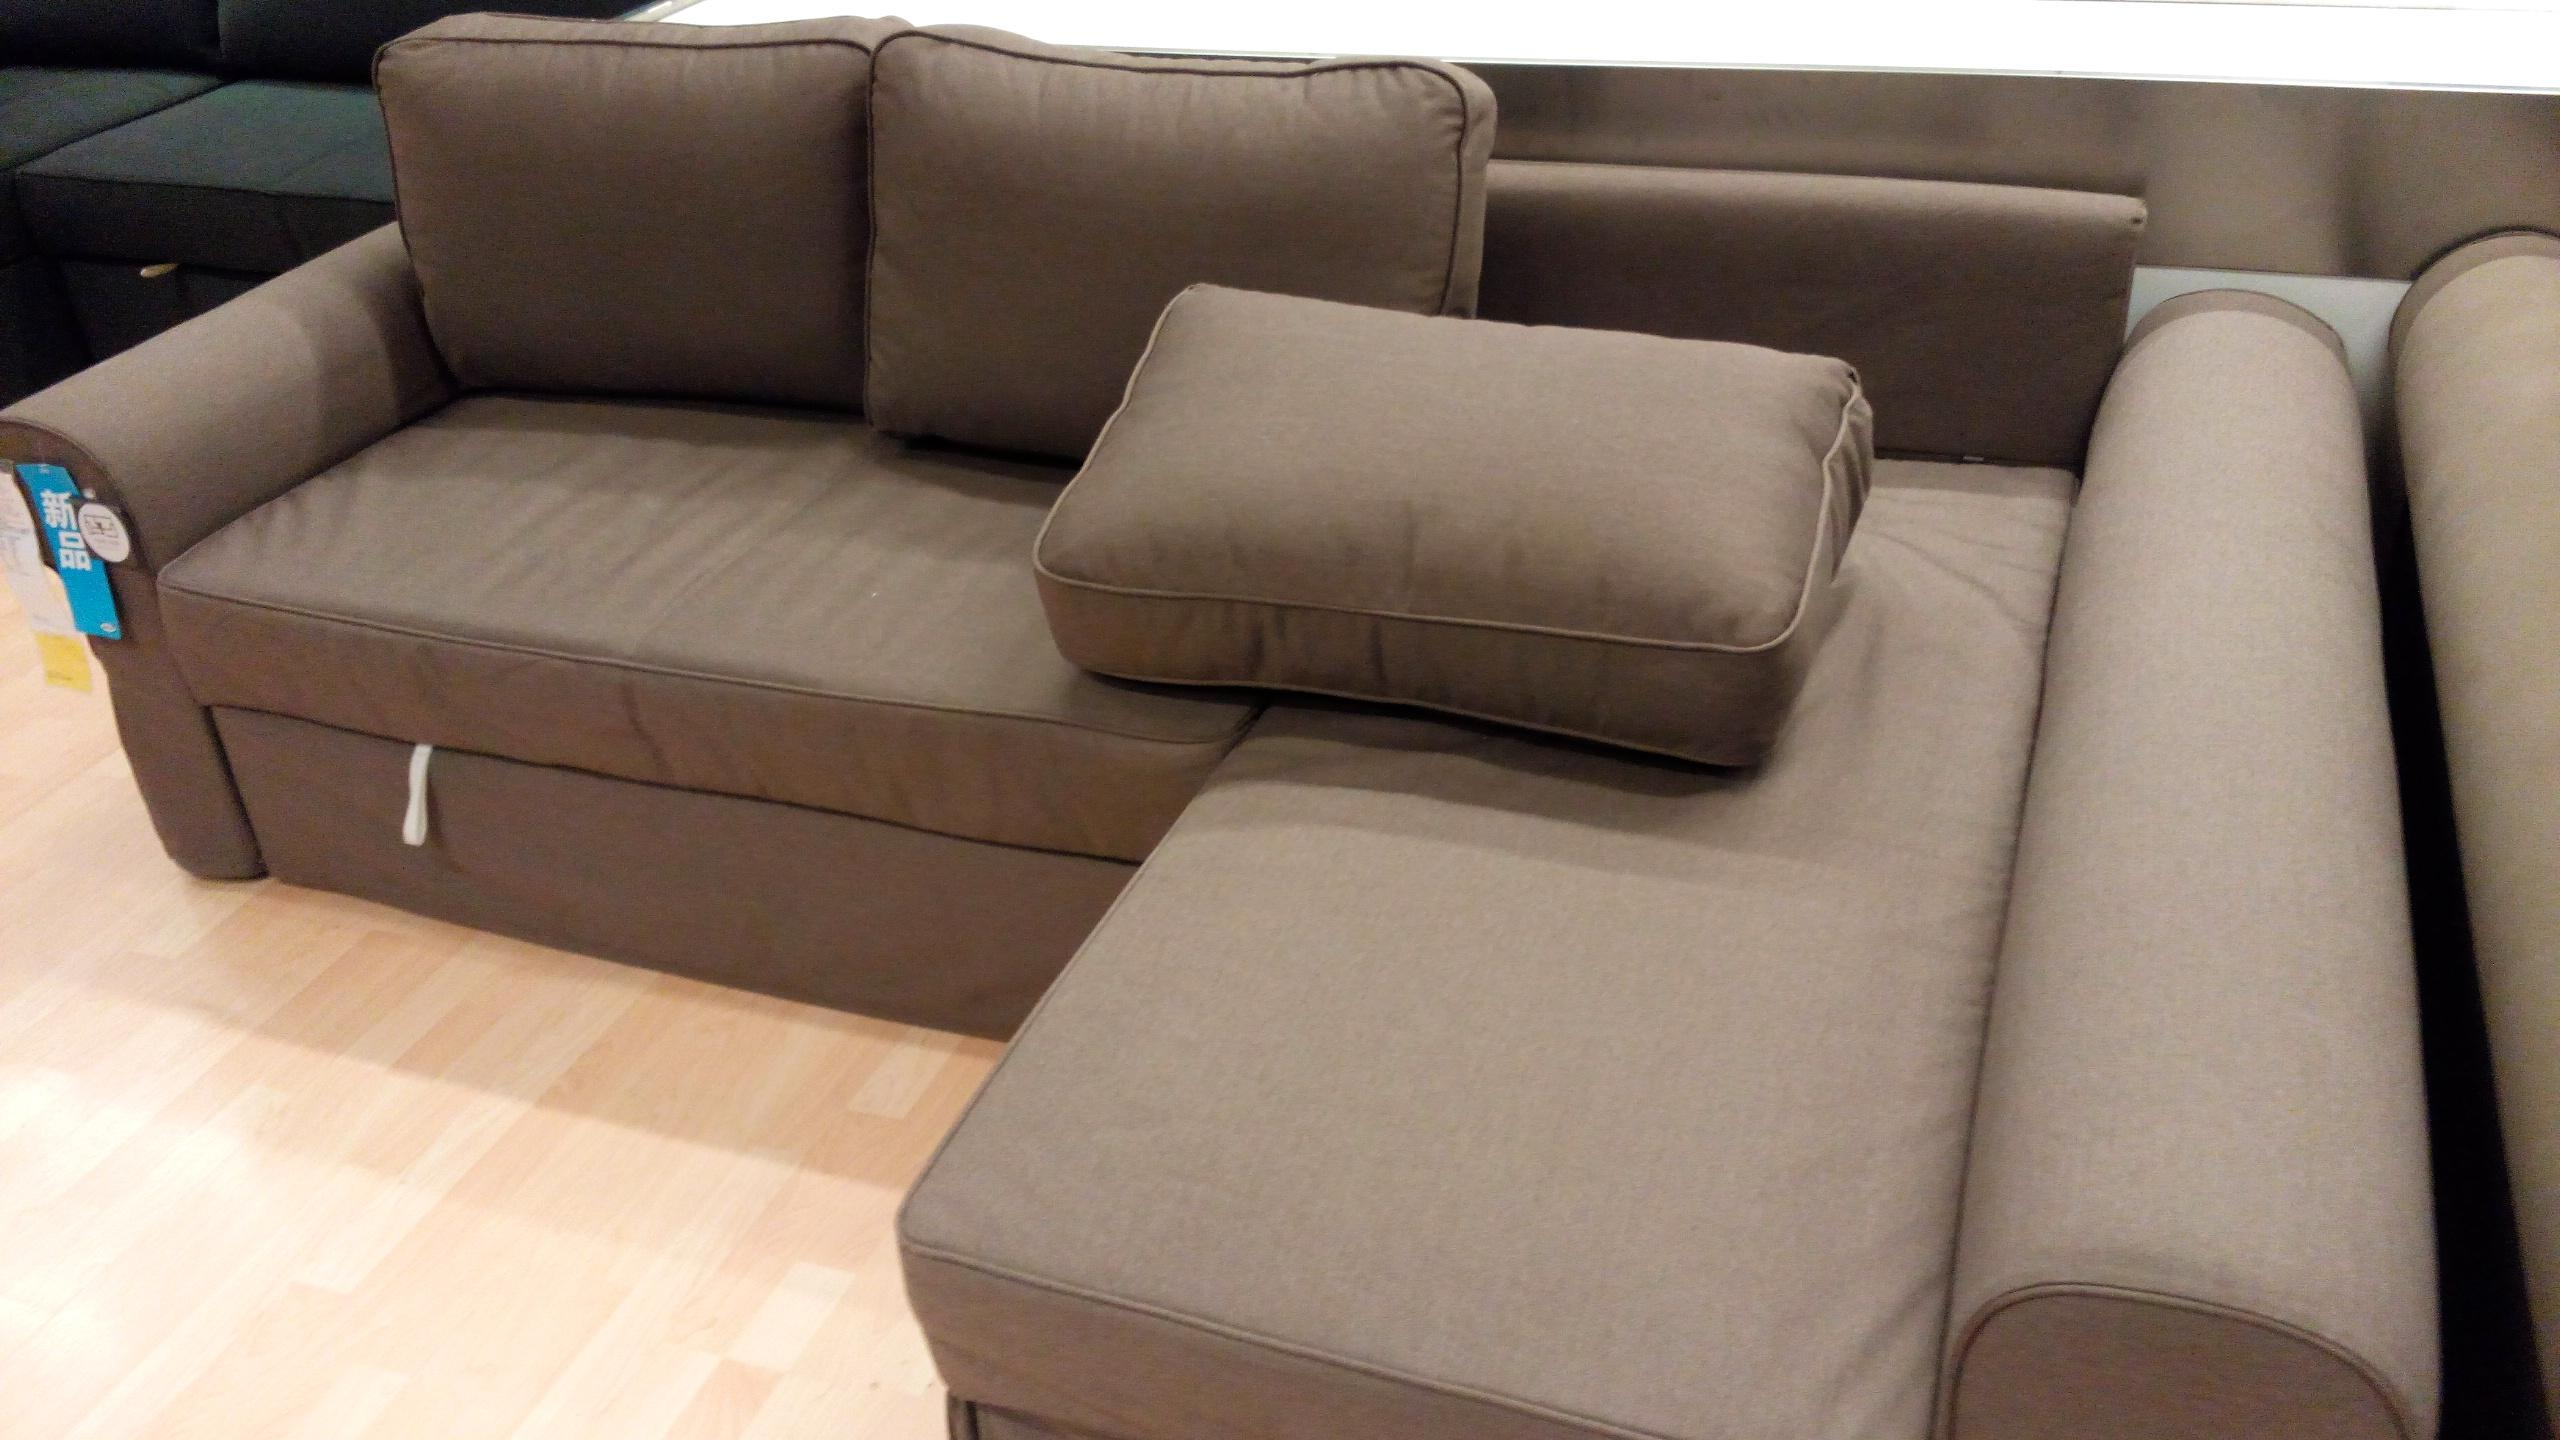 Ikea Vilasund And Backabro Review – Return Of The Sofa Bed Clones! Throughout Ikea Sofa Storage (View 17 of 20)